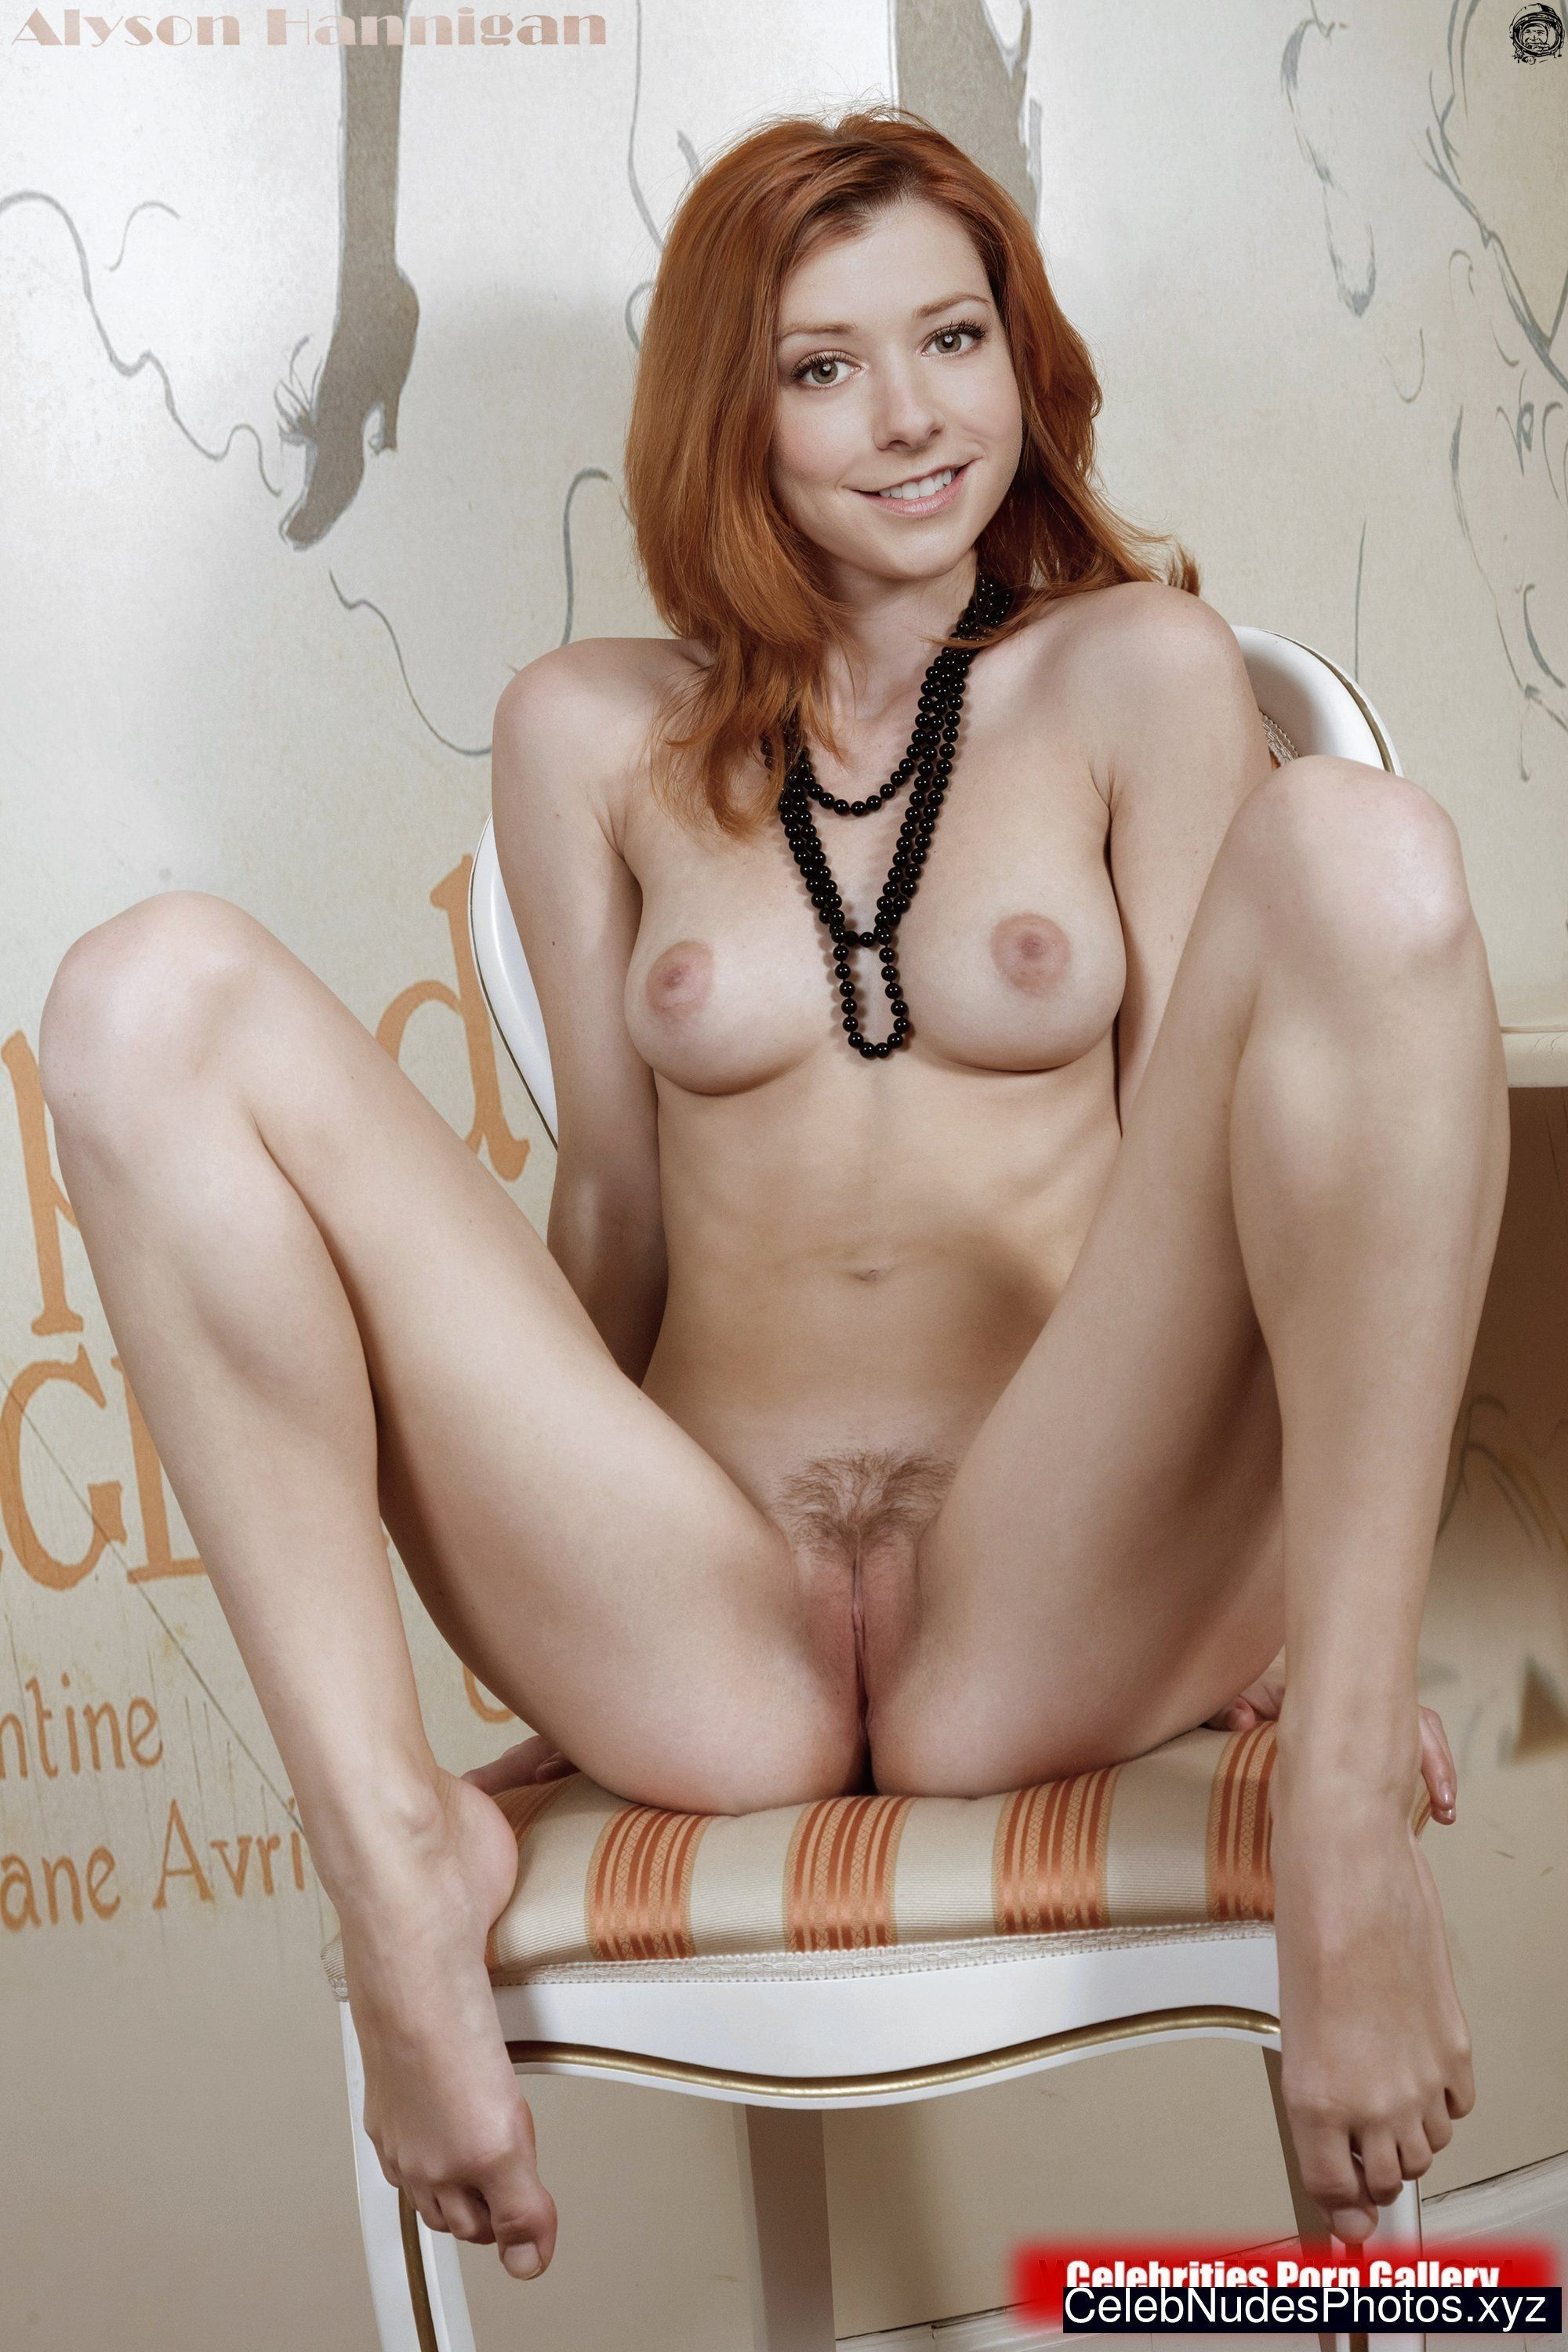 100 Photos of Alyson Hannigan Nude Porn